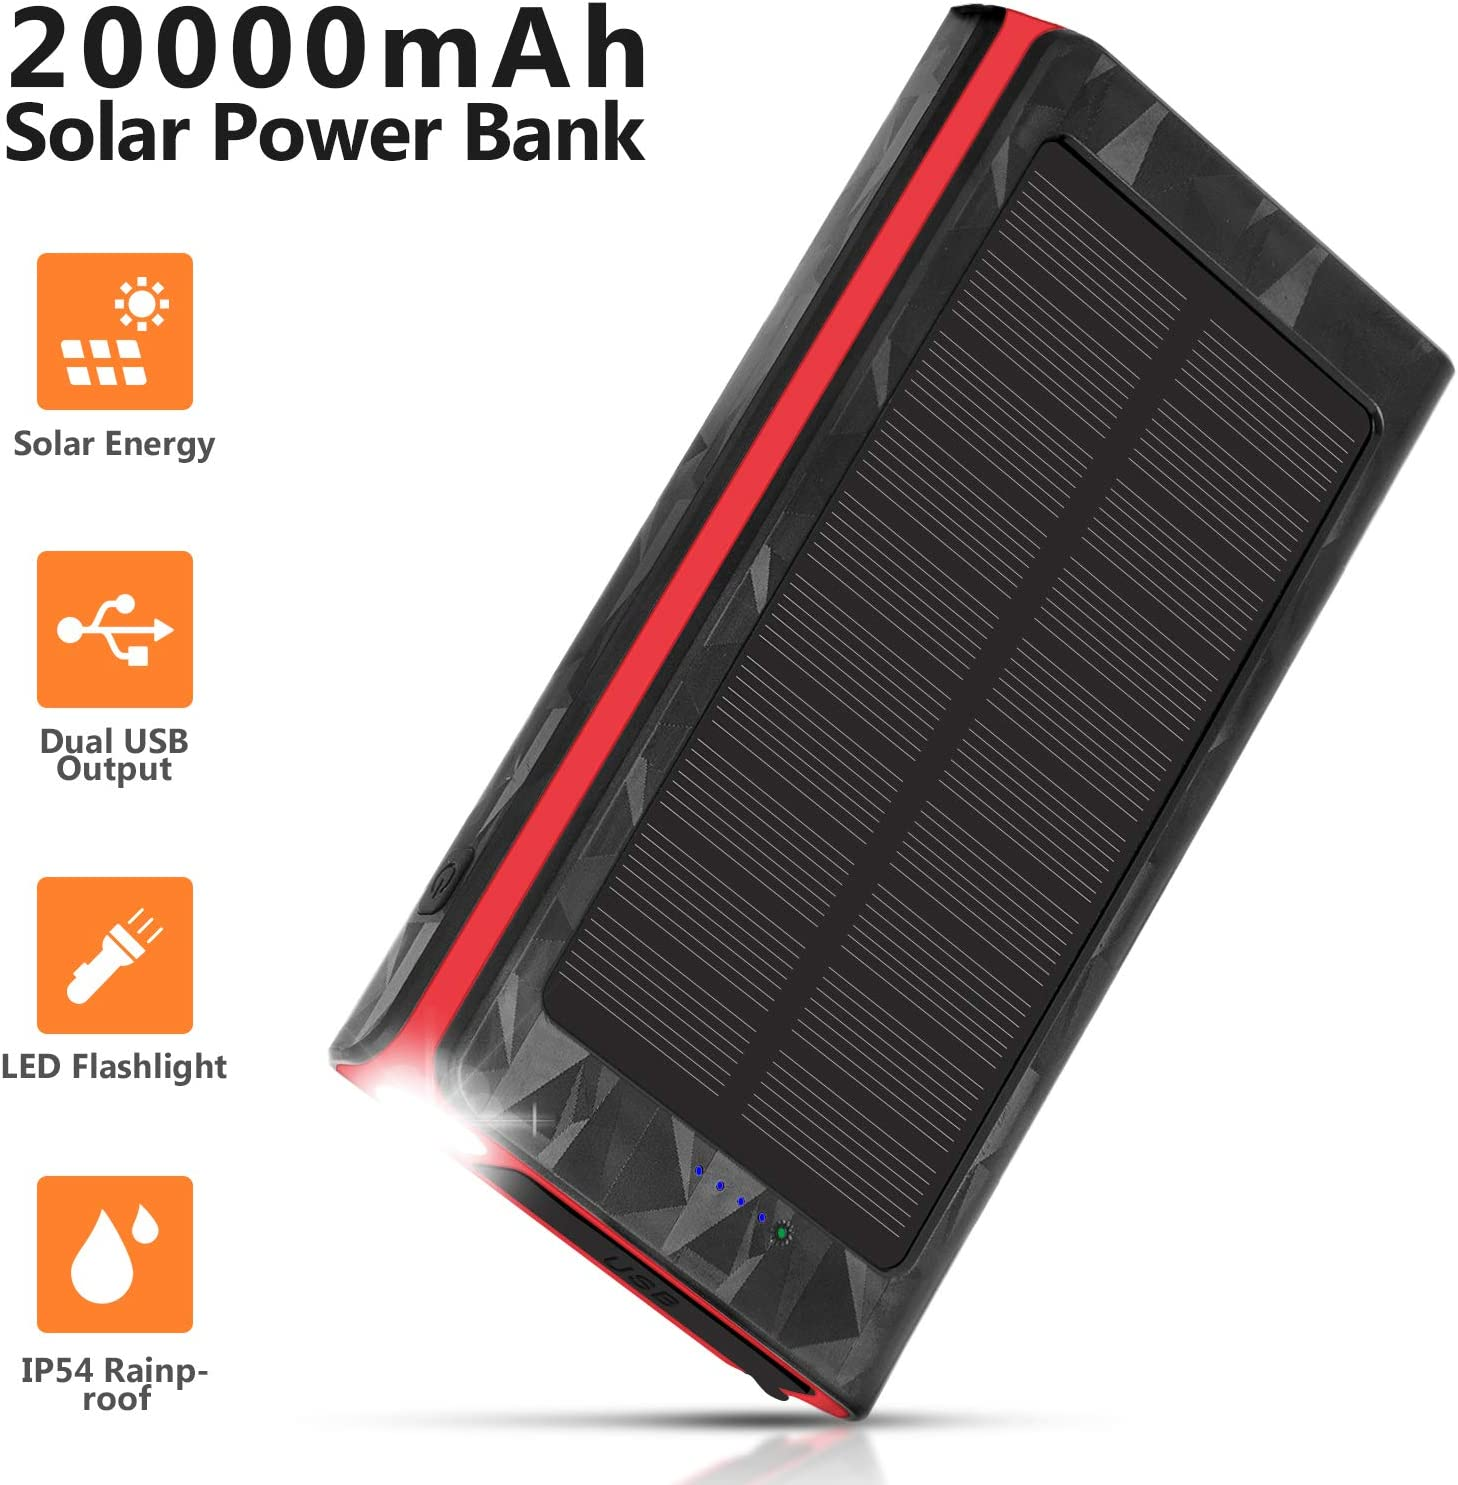 Solar Charger 20000mAh, Portable Phone Charger External Battery Pack, Compatible with iPhone Samsung Tablets & More, Type-C and Micro USB Inputs, 3 Outputs, Flashlight, Lanyard, IP54 Rainproof: Electronics